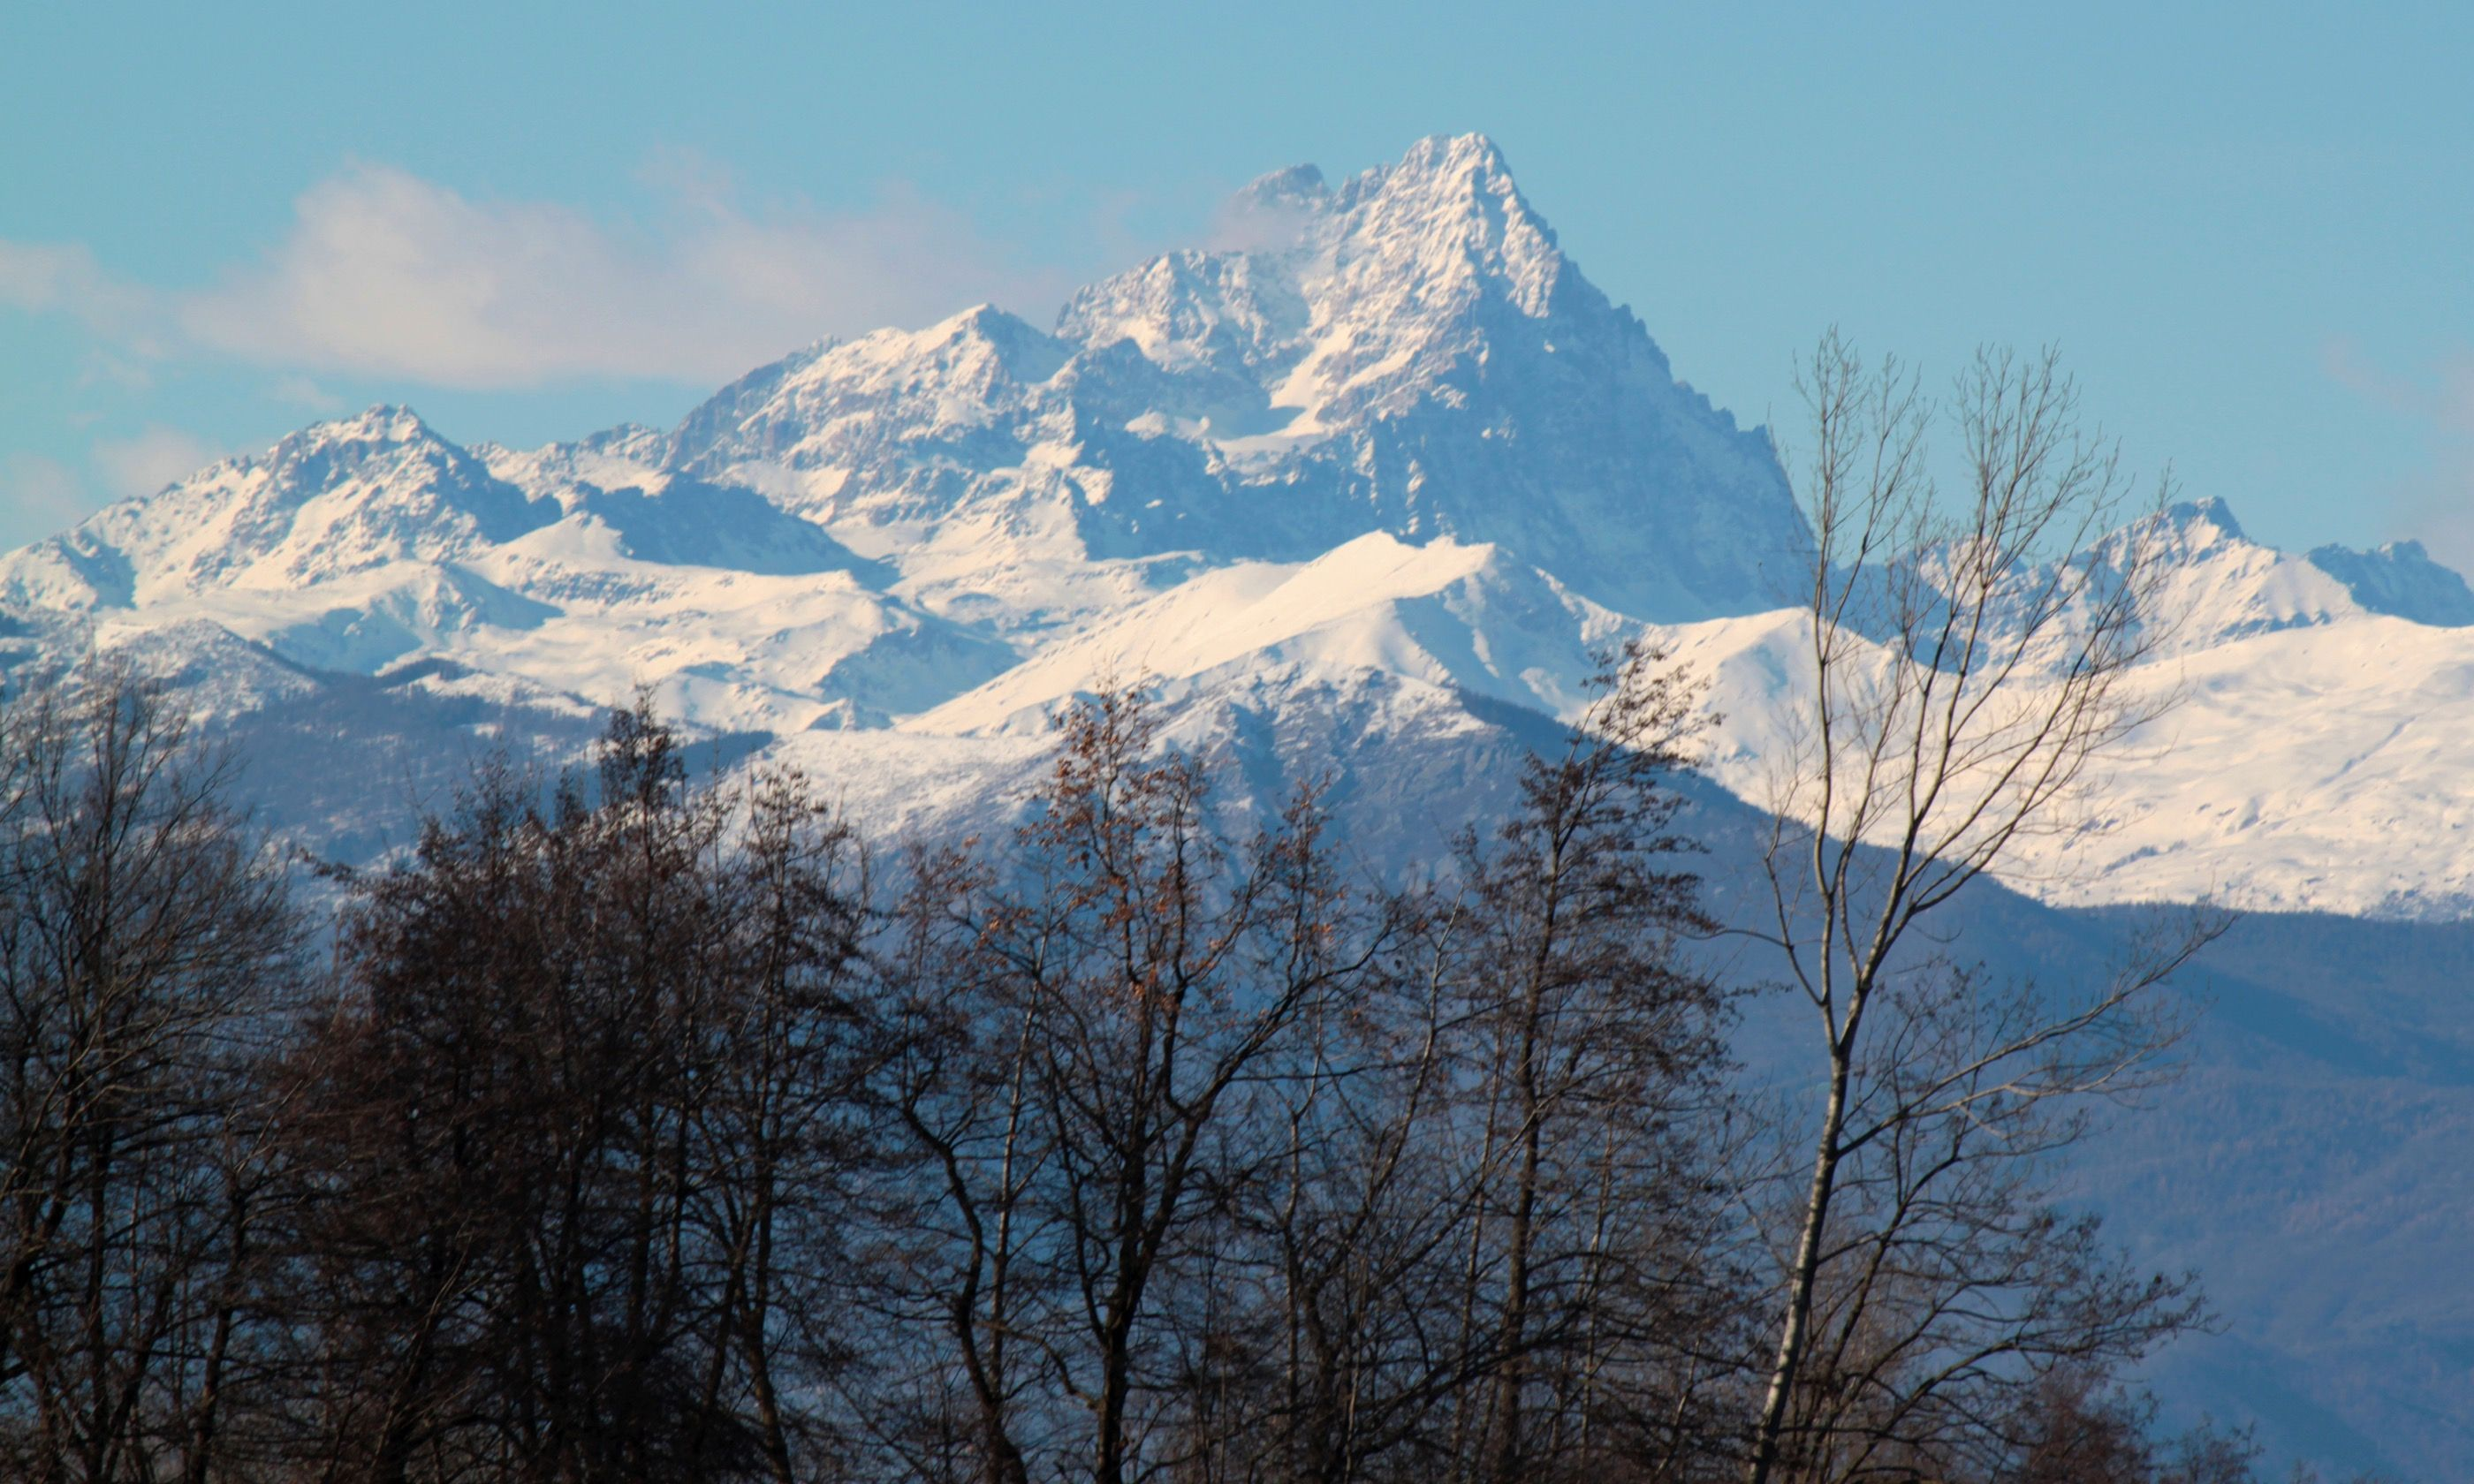 Monte Viso seen from the Hautes-Alpes (Dreamstime)